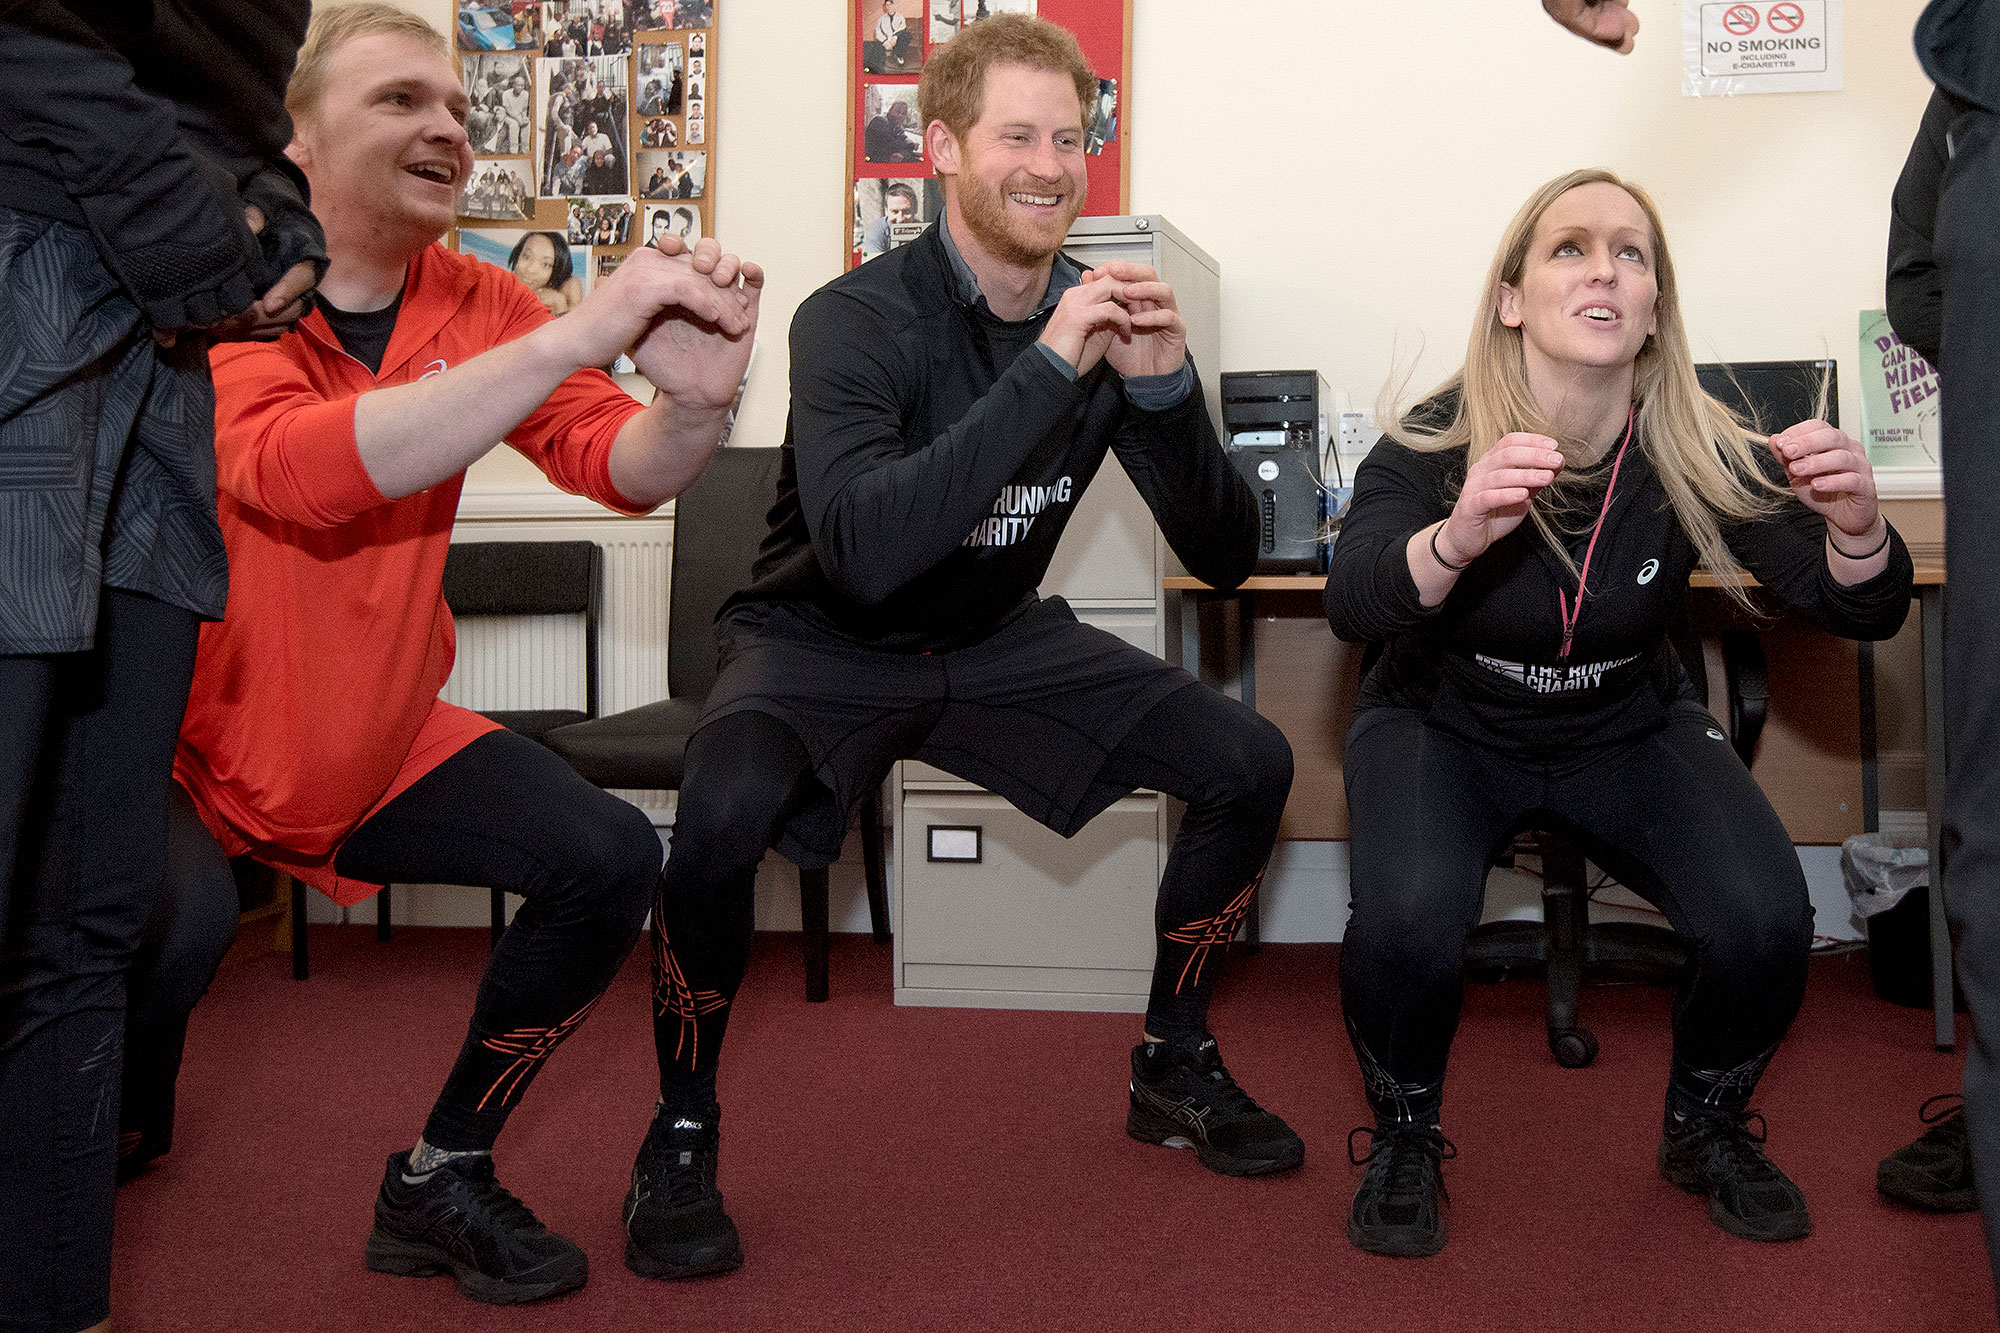 LONDON, UNITED KINGSDOM - JANUARY 26: Prince Harry warms-up with staff and users of The Running Charity, which is the UK's first running-orientated programme for homeless and vulnerable young people, on January 26, 2017 in Willesden, north west London, England. (Photo by Geoff Pugh-WPA 3Images)